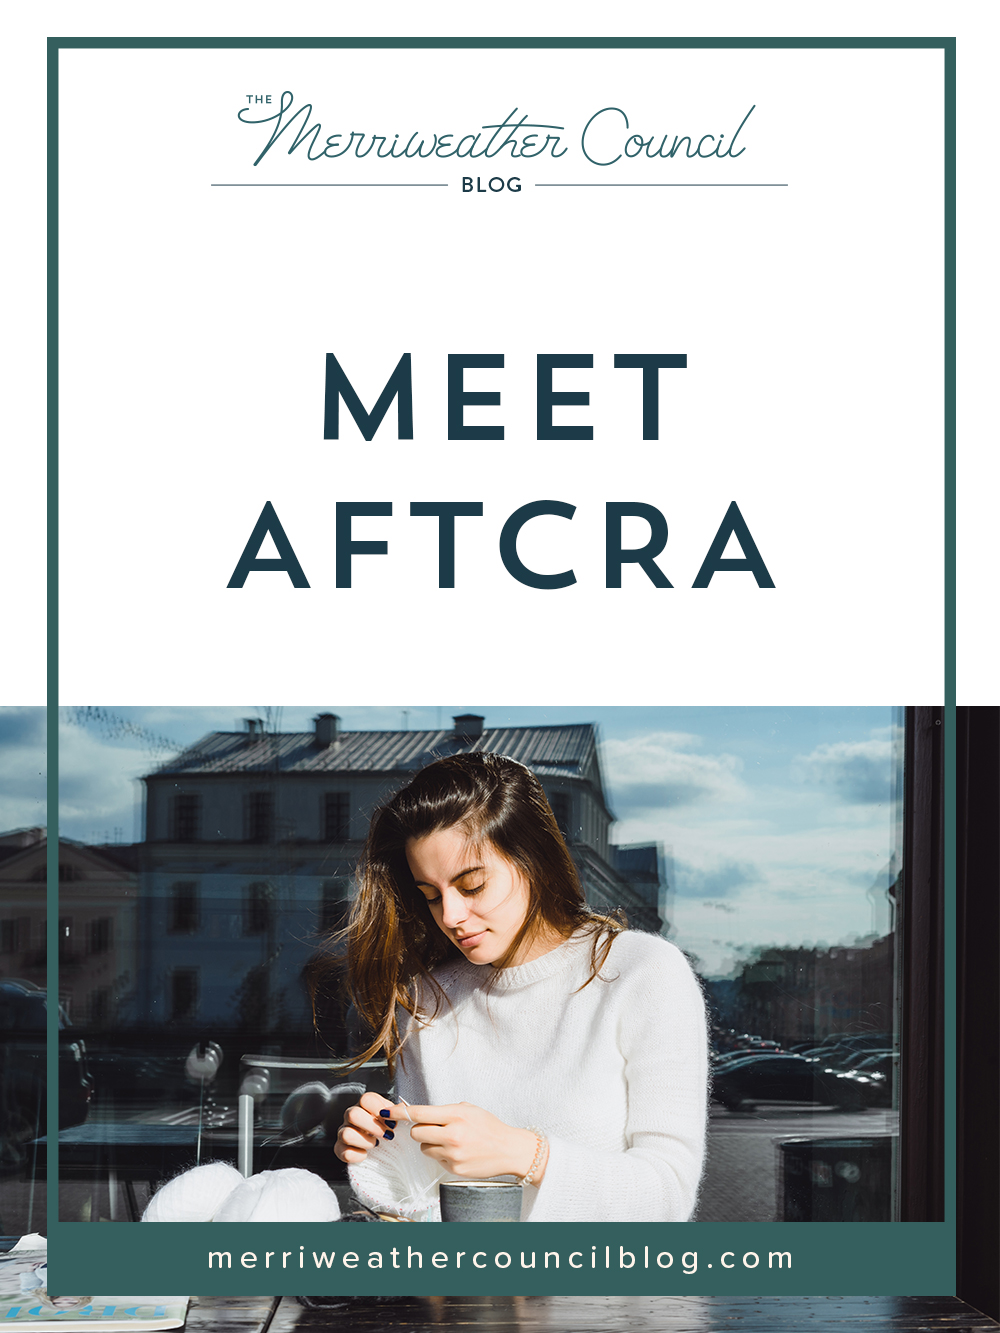 meet aftcra | the merriweather council blog